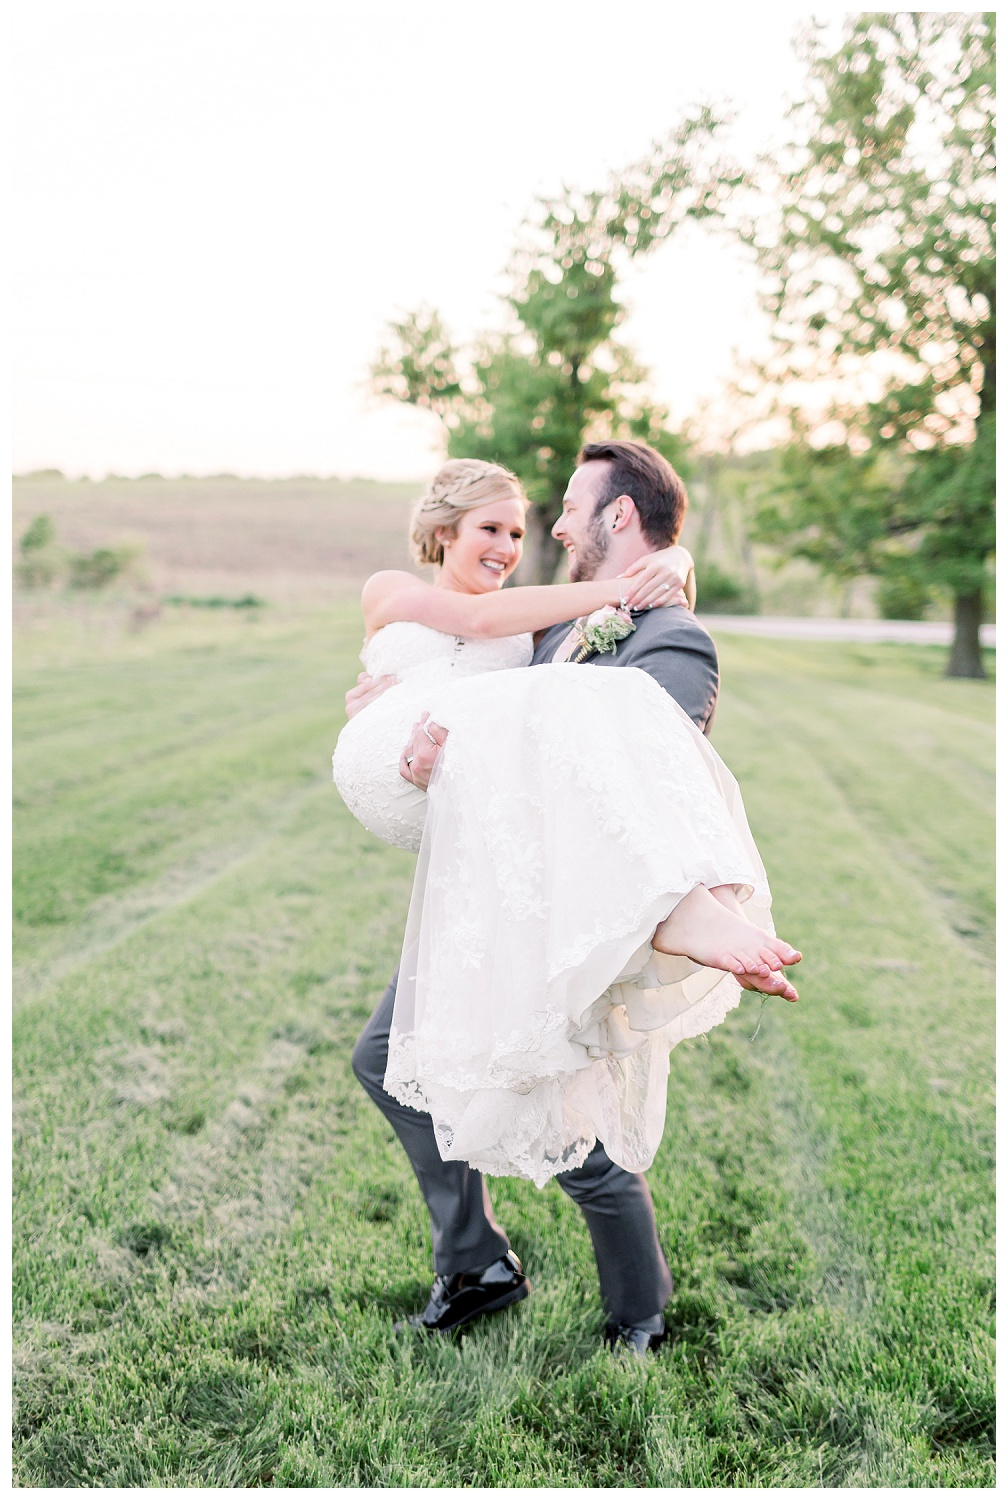 light and airy wedding photographer in the midwest